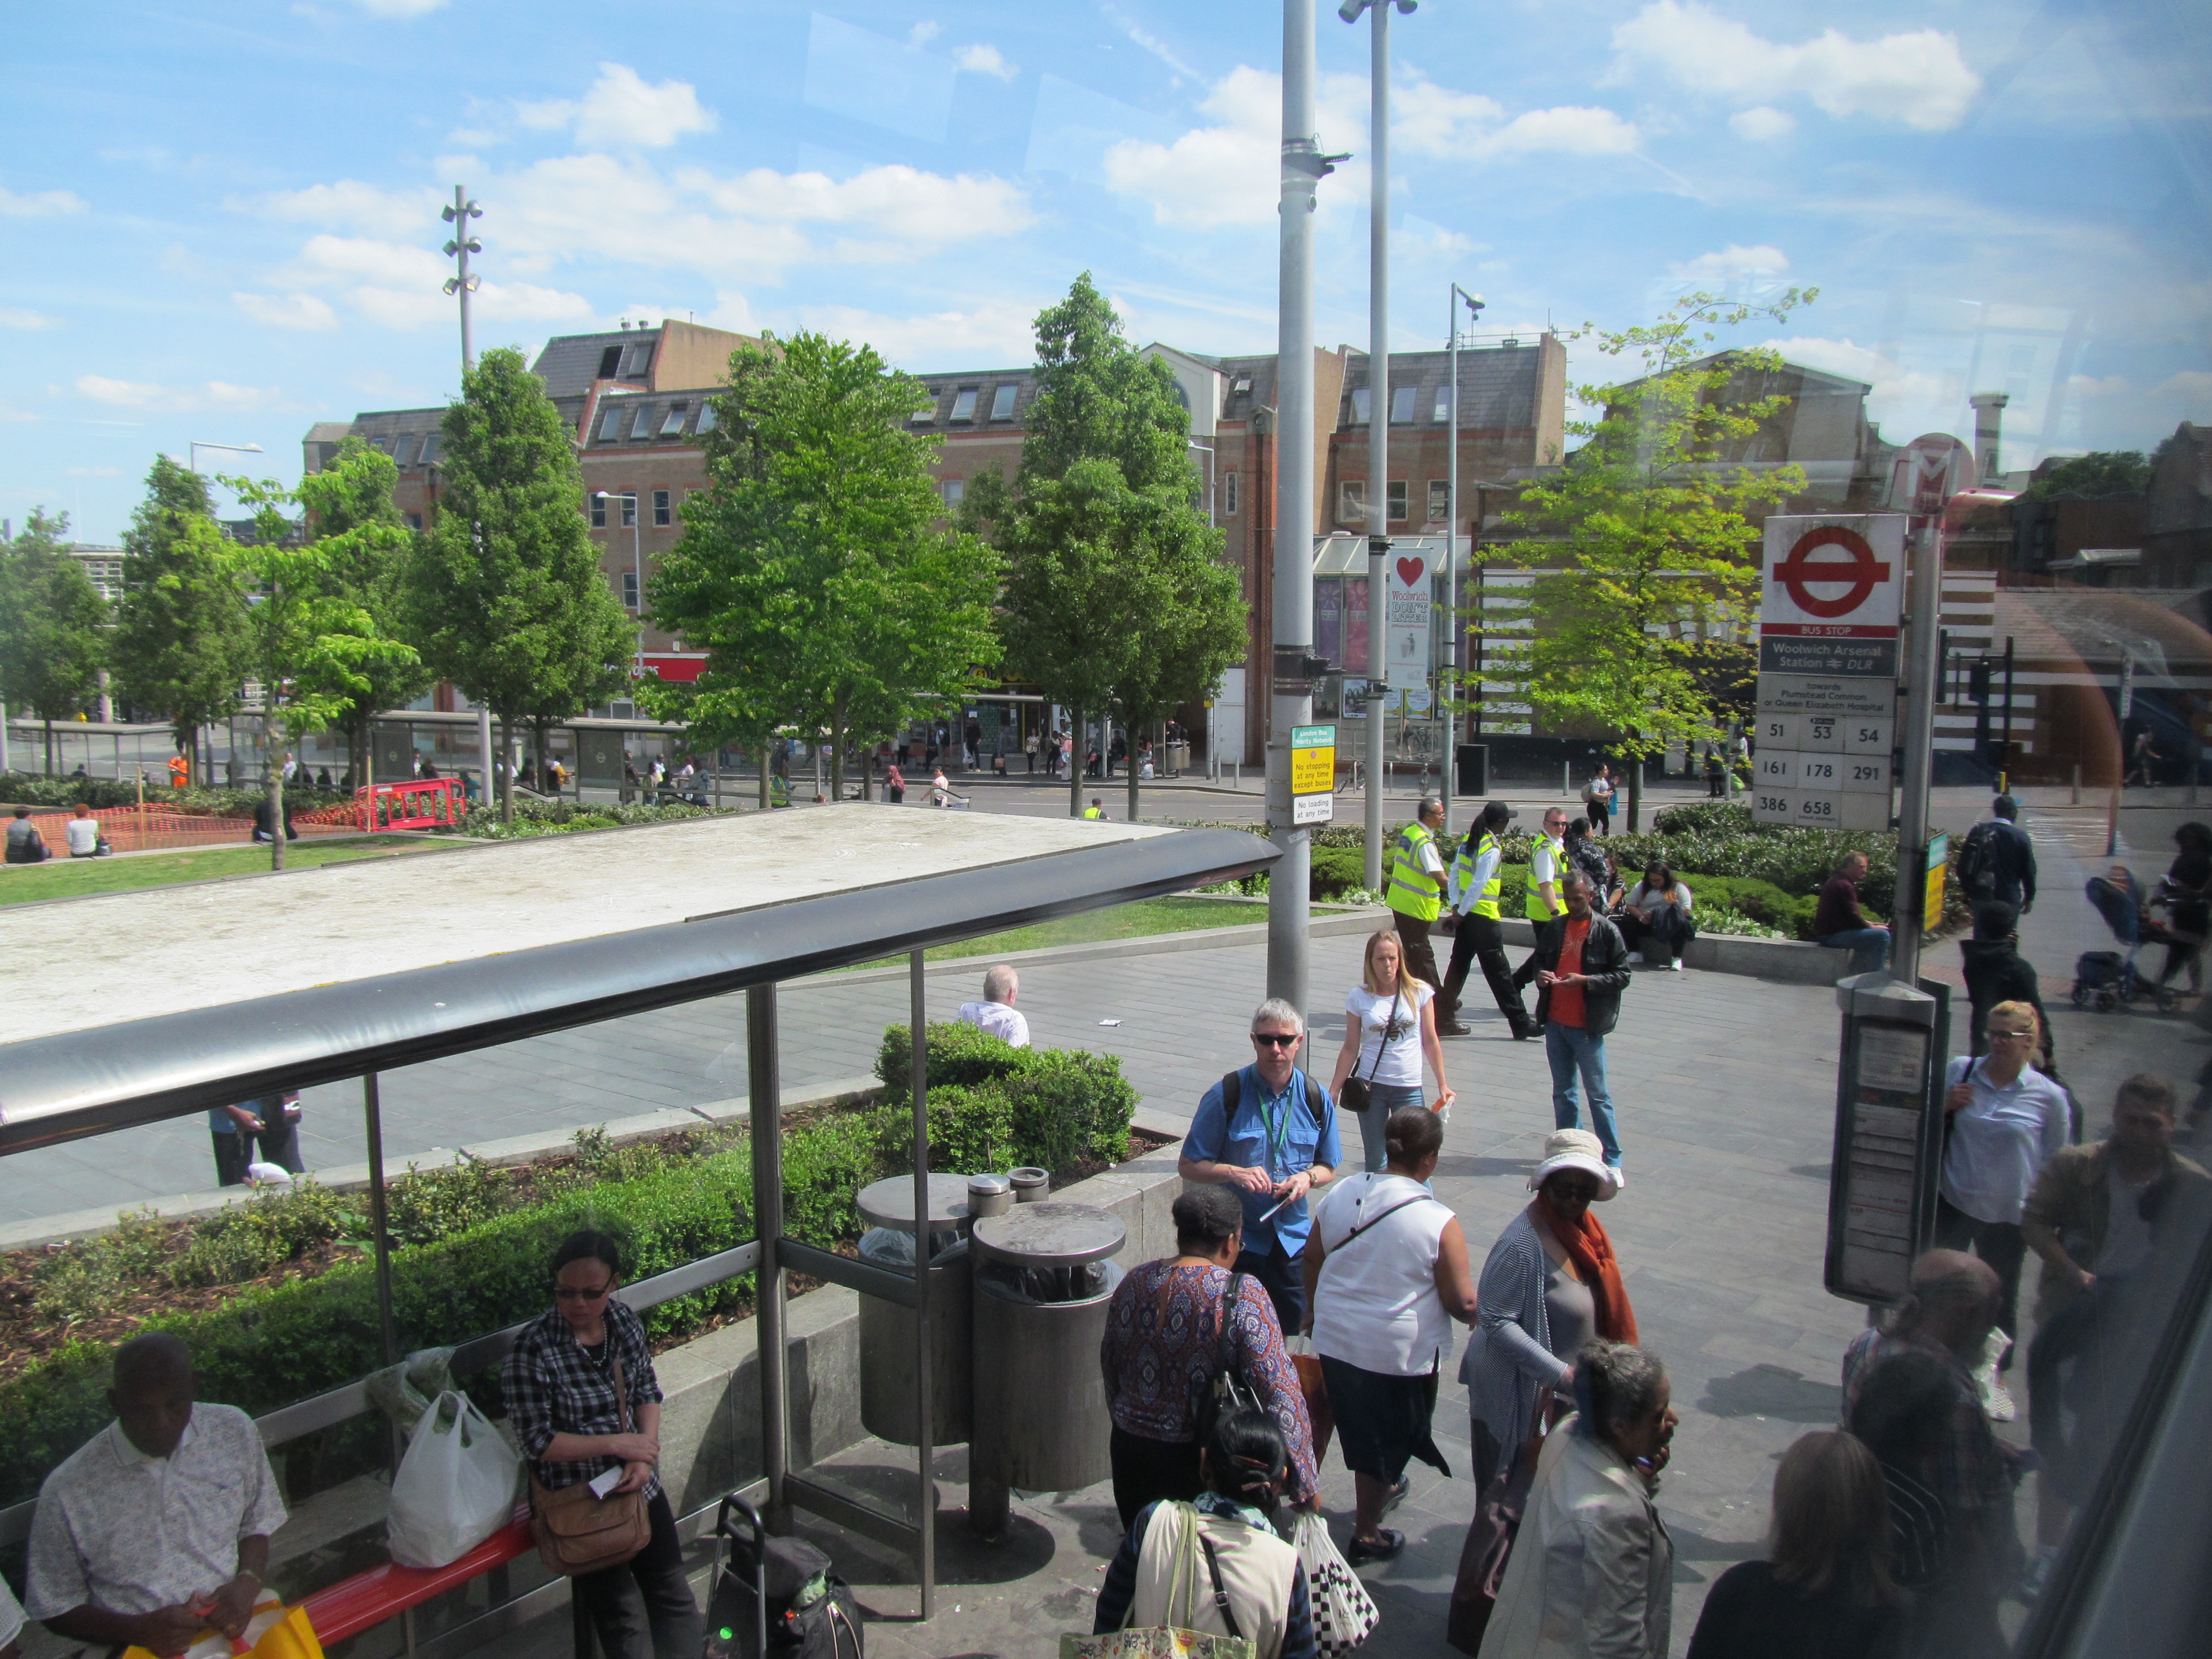 Woolwich one of the top spots in London for people using bus hoppa fares